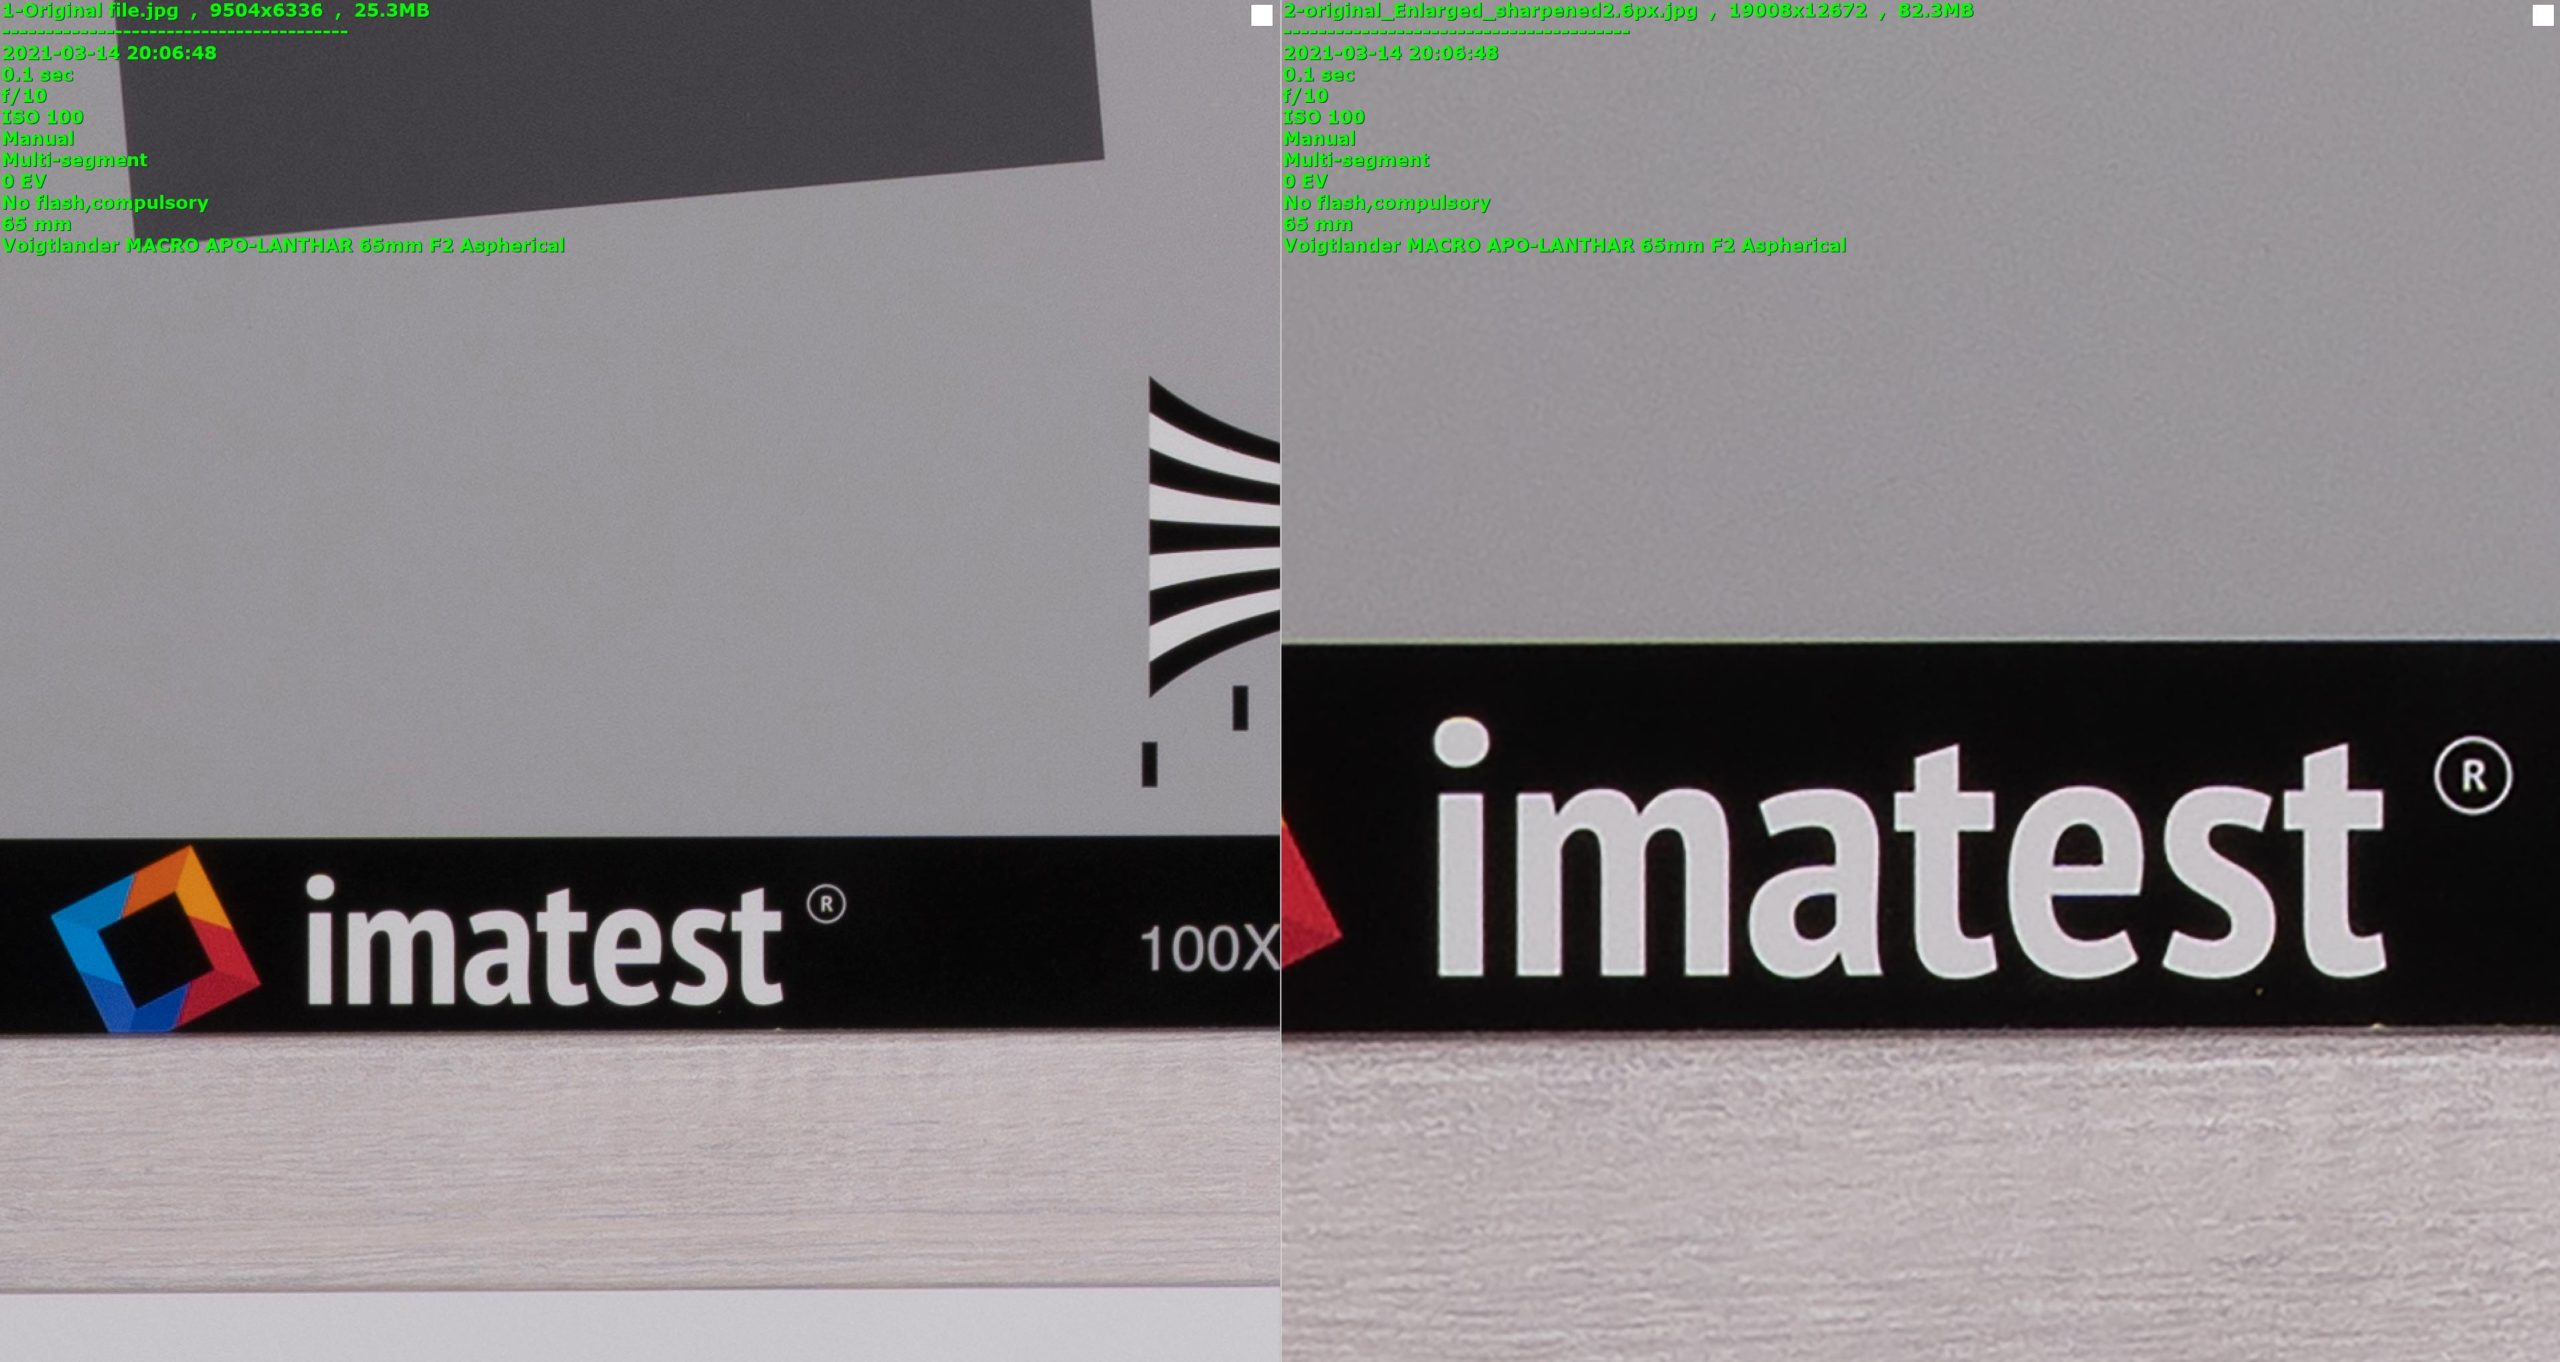 Original [left] vs. Enlarged Original with Unsharp Mask - 4 times the scale (25MB vs. 82MB files sizes)